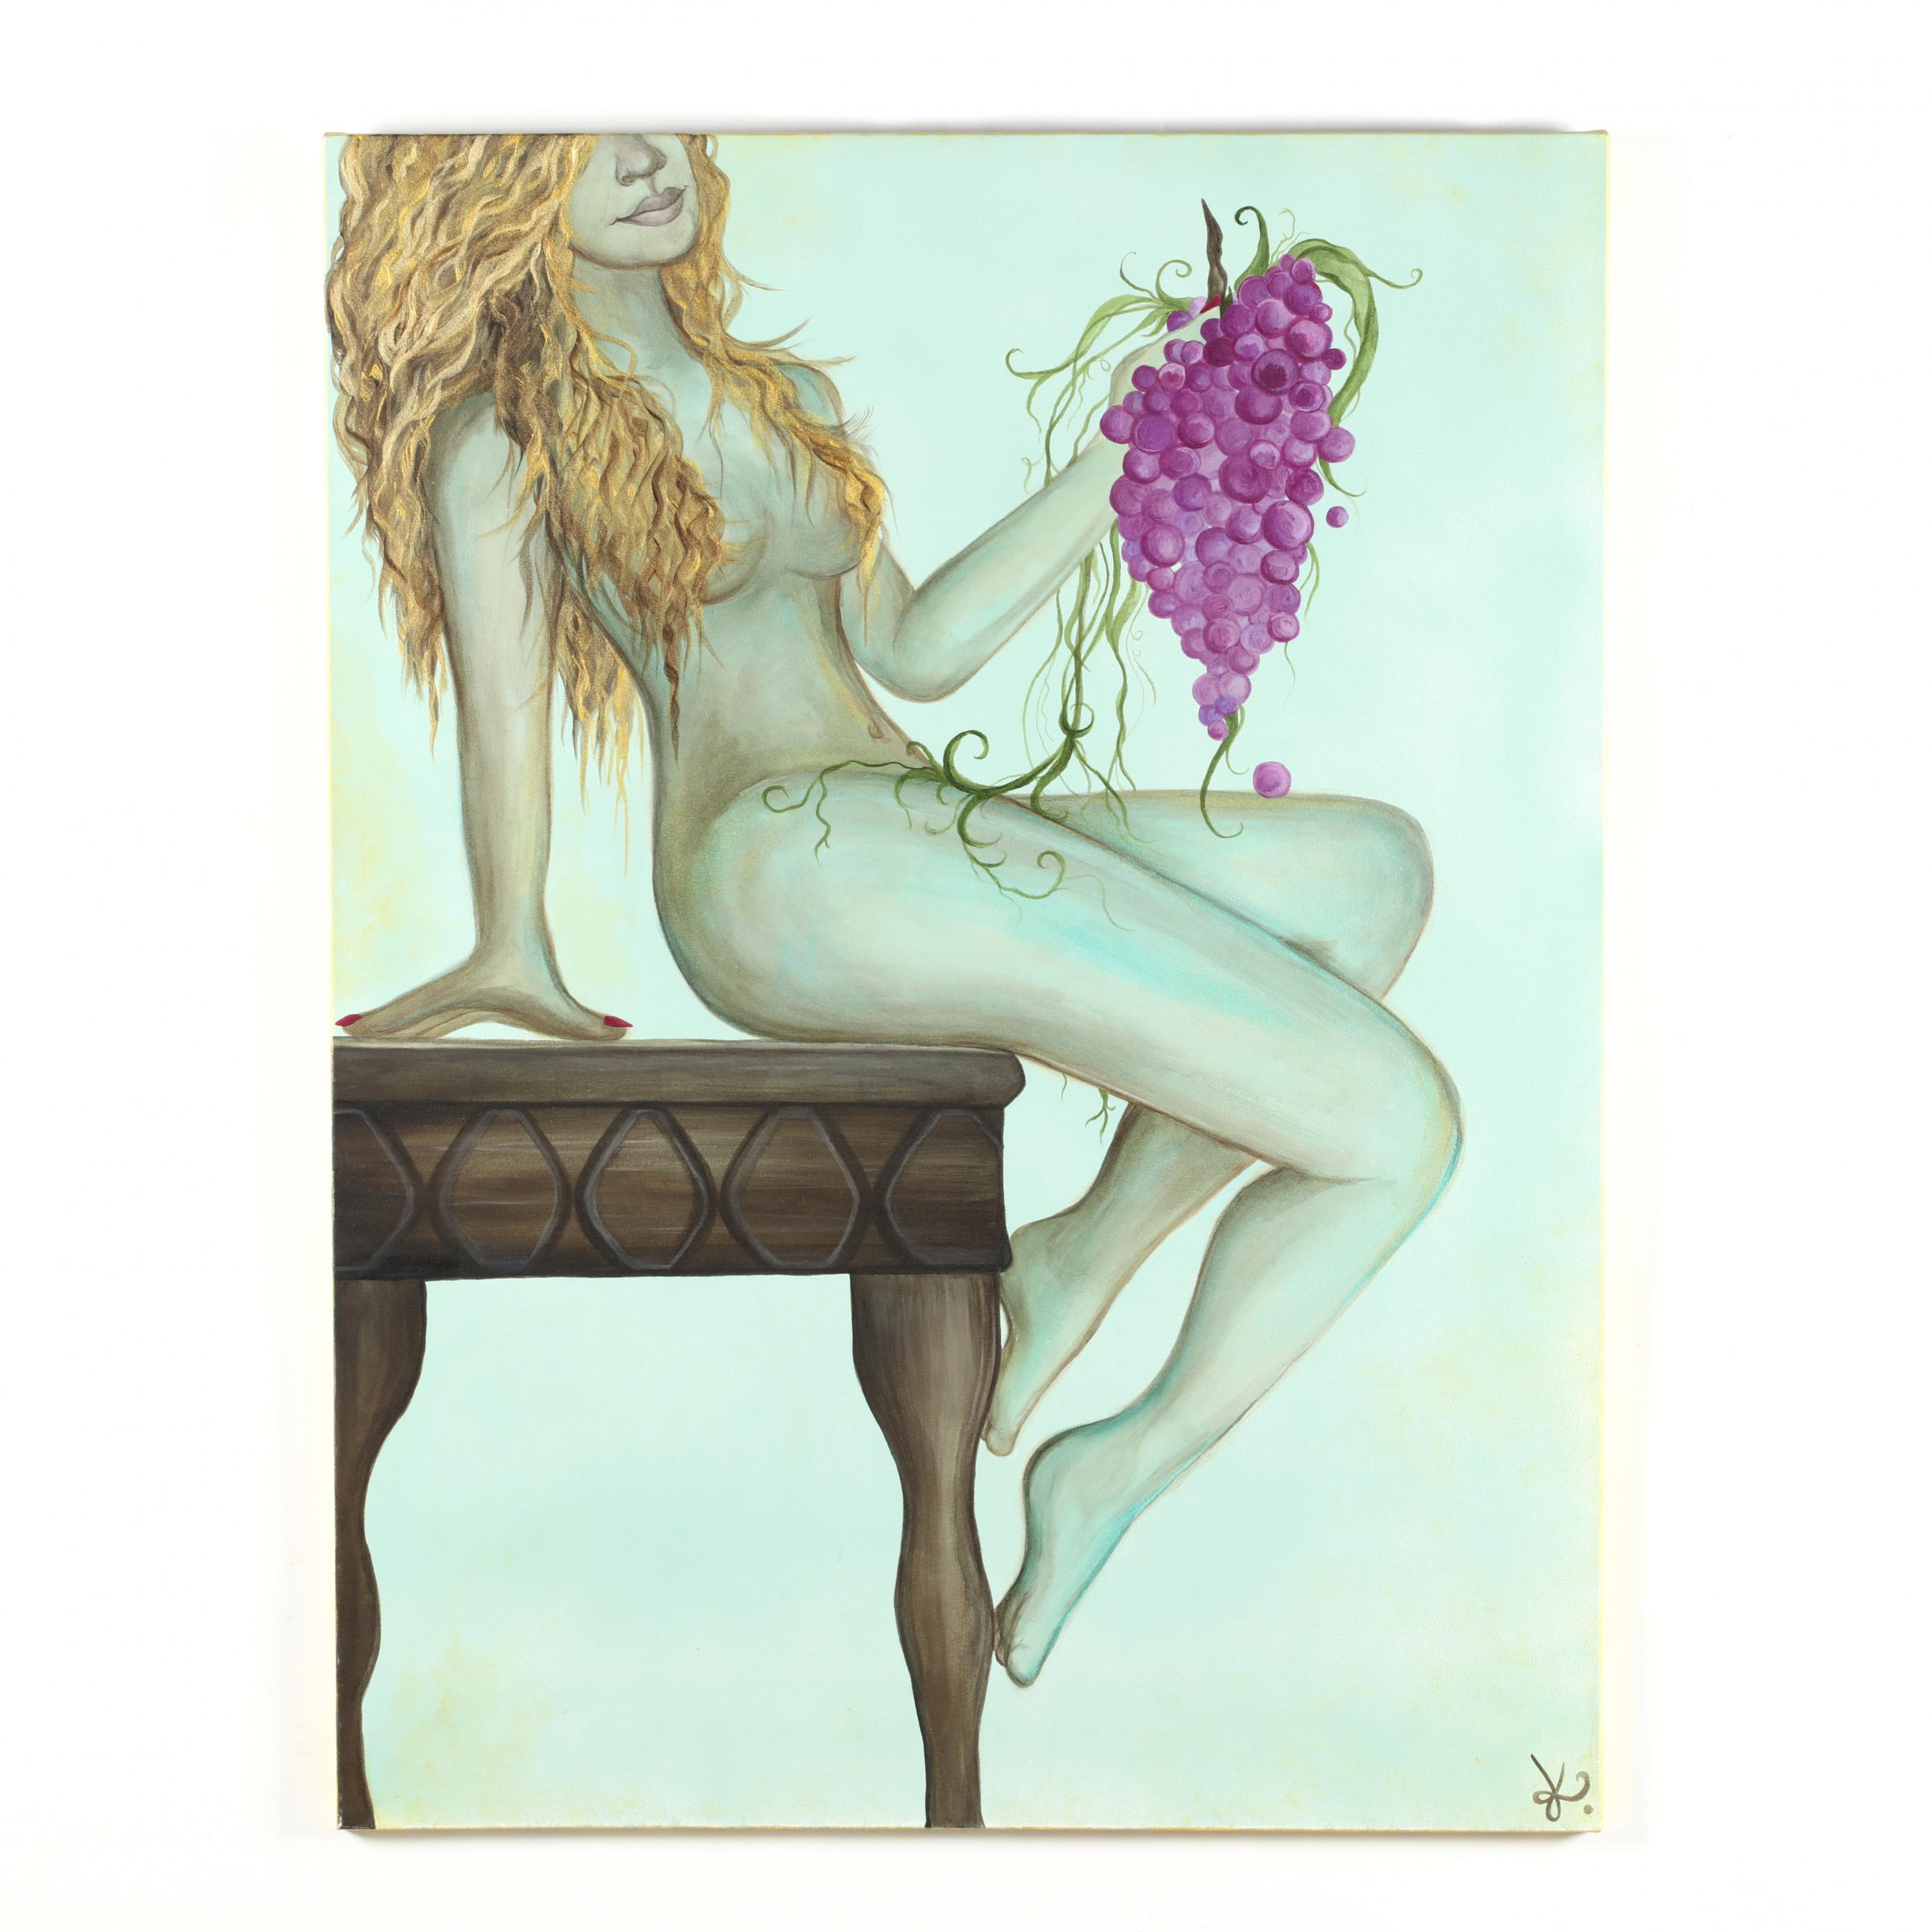 kelsey-lundquist-nc-study-of-woman-with-grapes